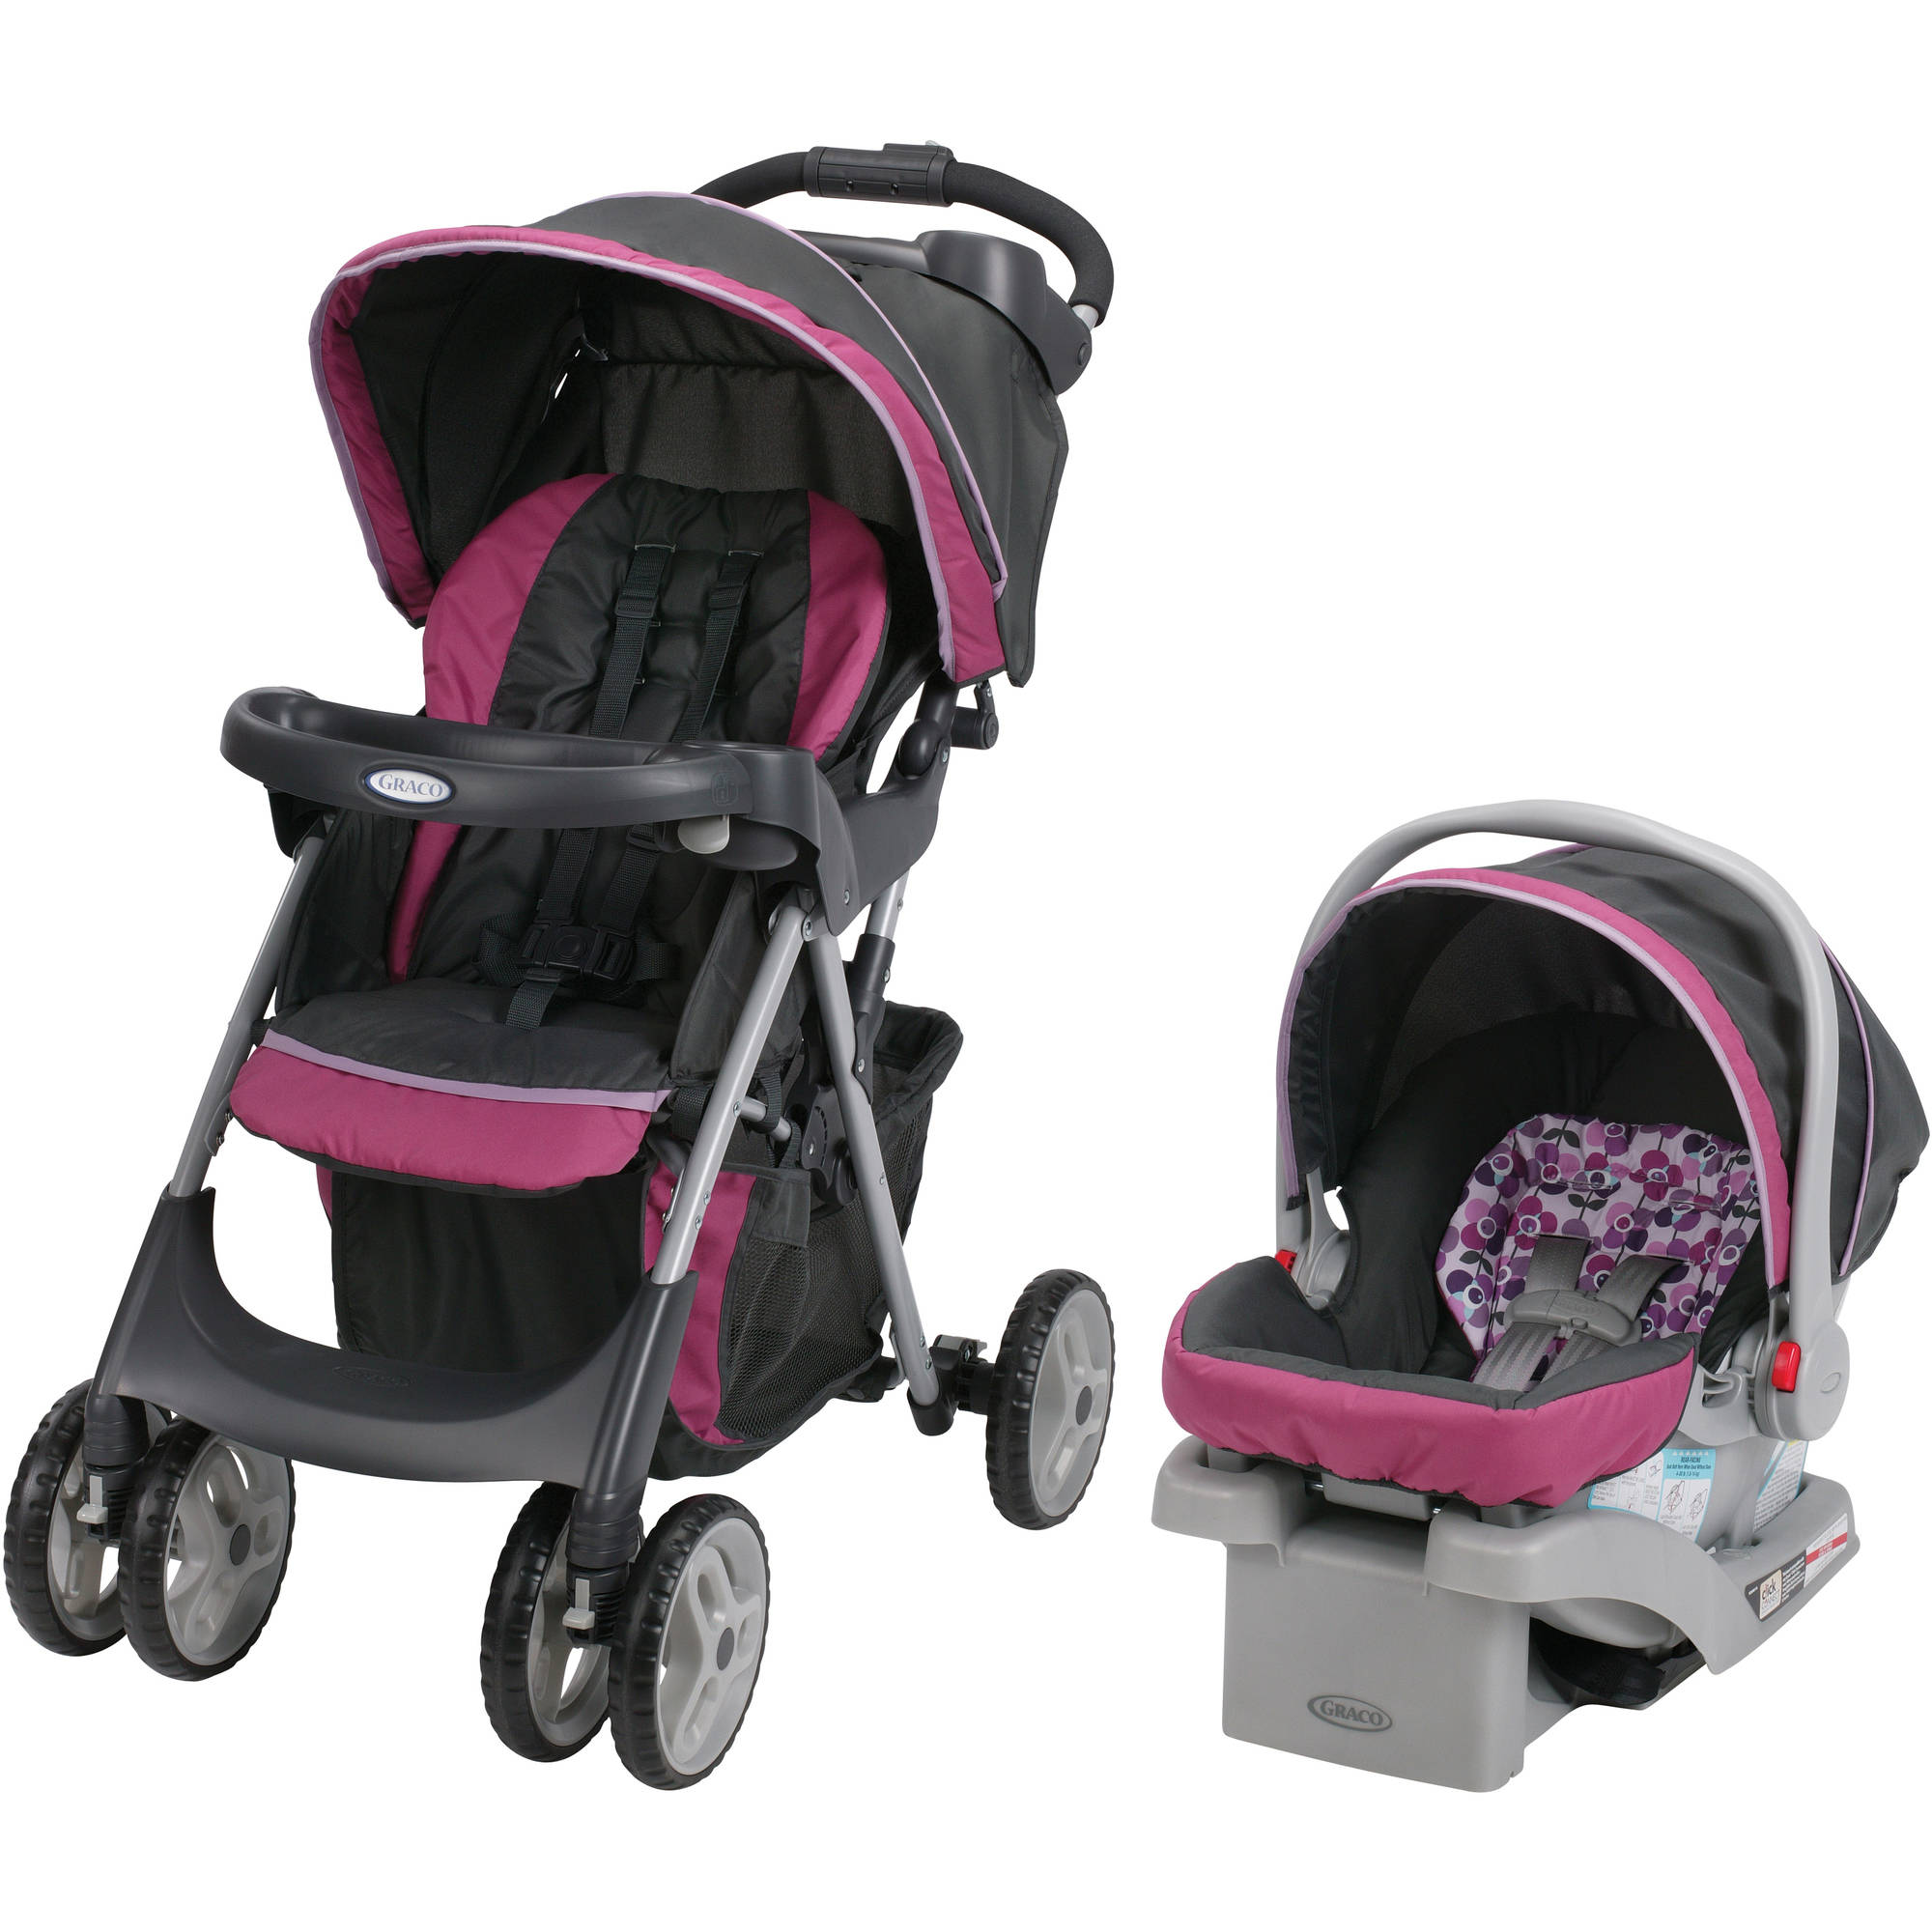 Combination Car Seats Walmart